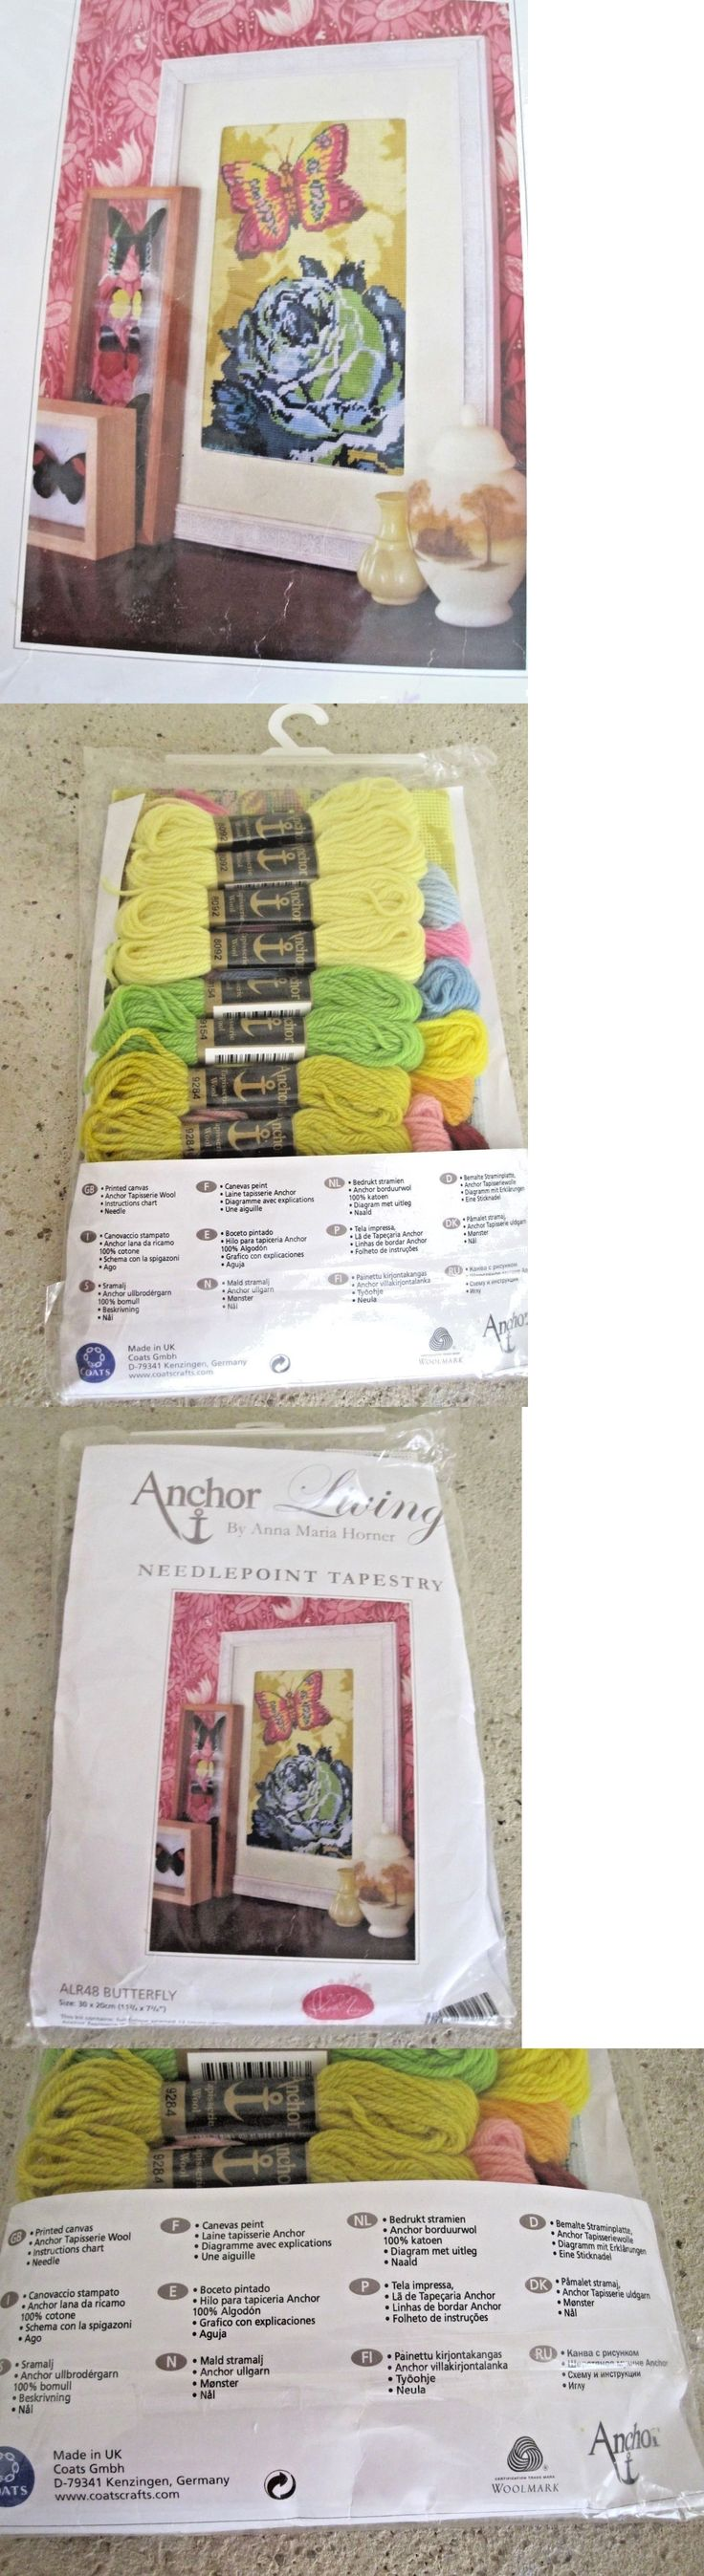 Needlepoint Kits 3109: Anchor Living Anna Maria Horner Needlepoint Tapestry Kit Alr 48 Butterfly Floral -> BUY IT NOW ONLY: $79.99 on eBay!